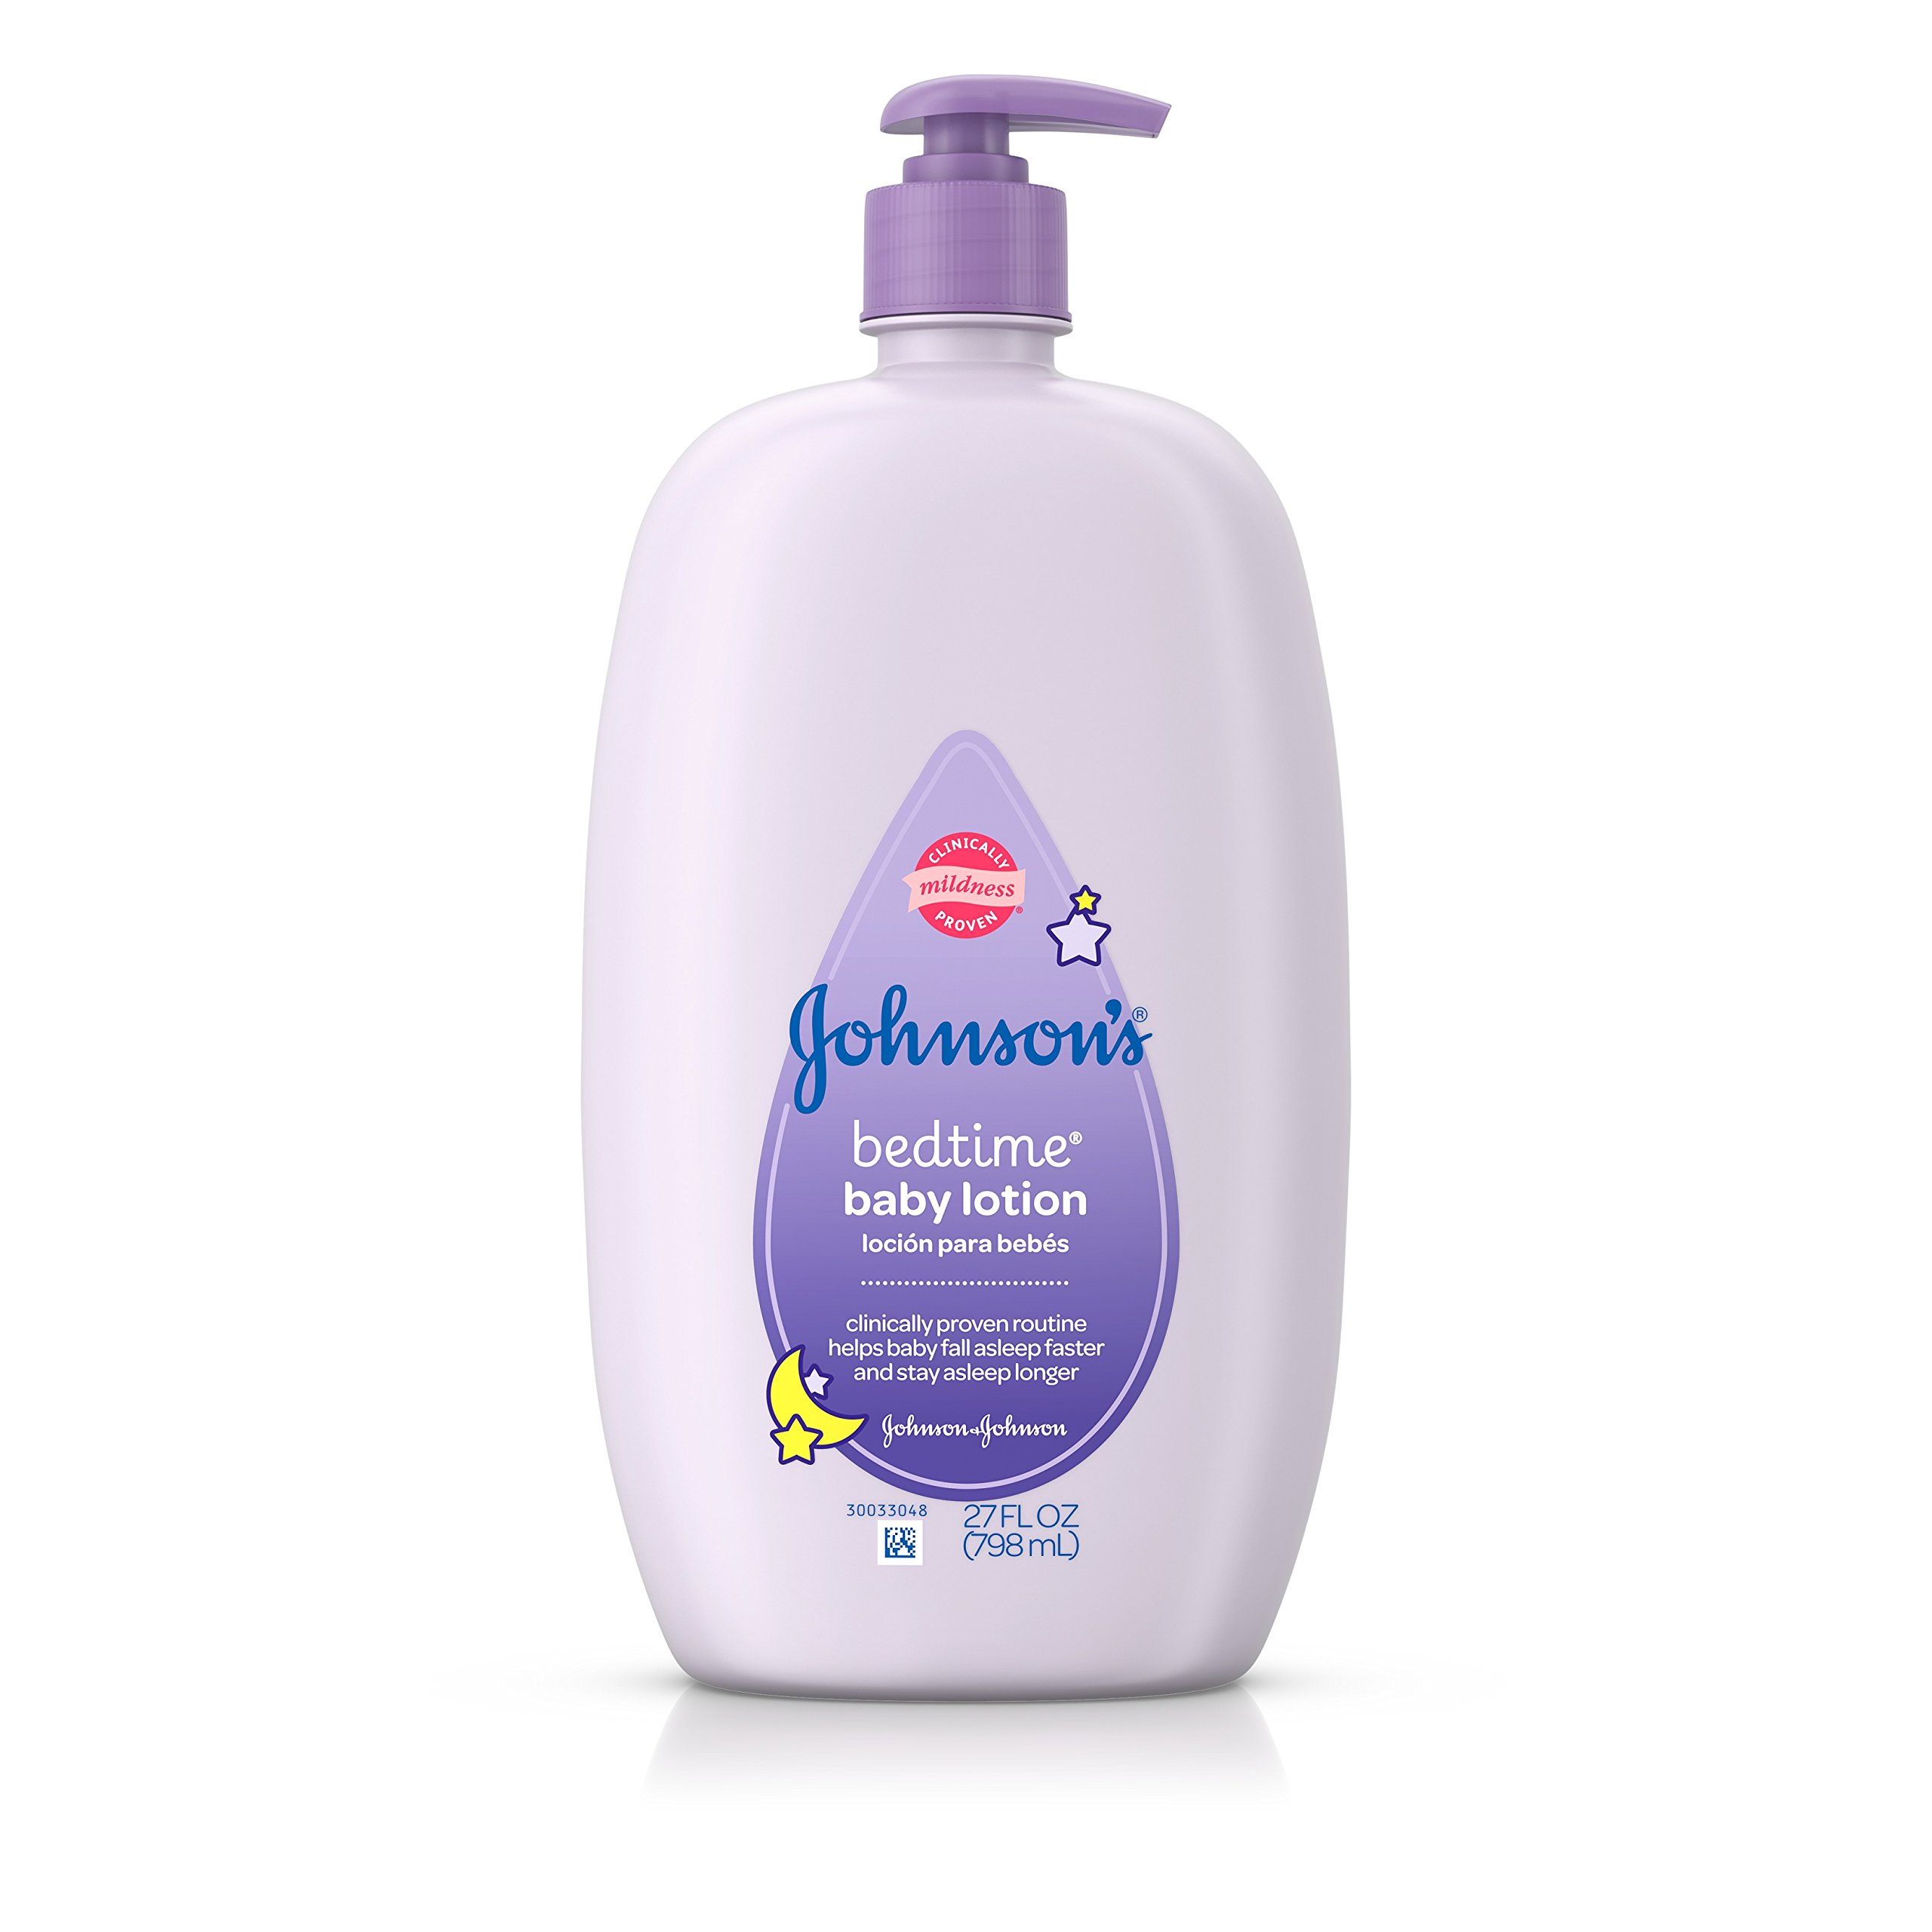 Johnson's Bedtime Hypoallergenic Lotion, 27 Fl. Oz.